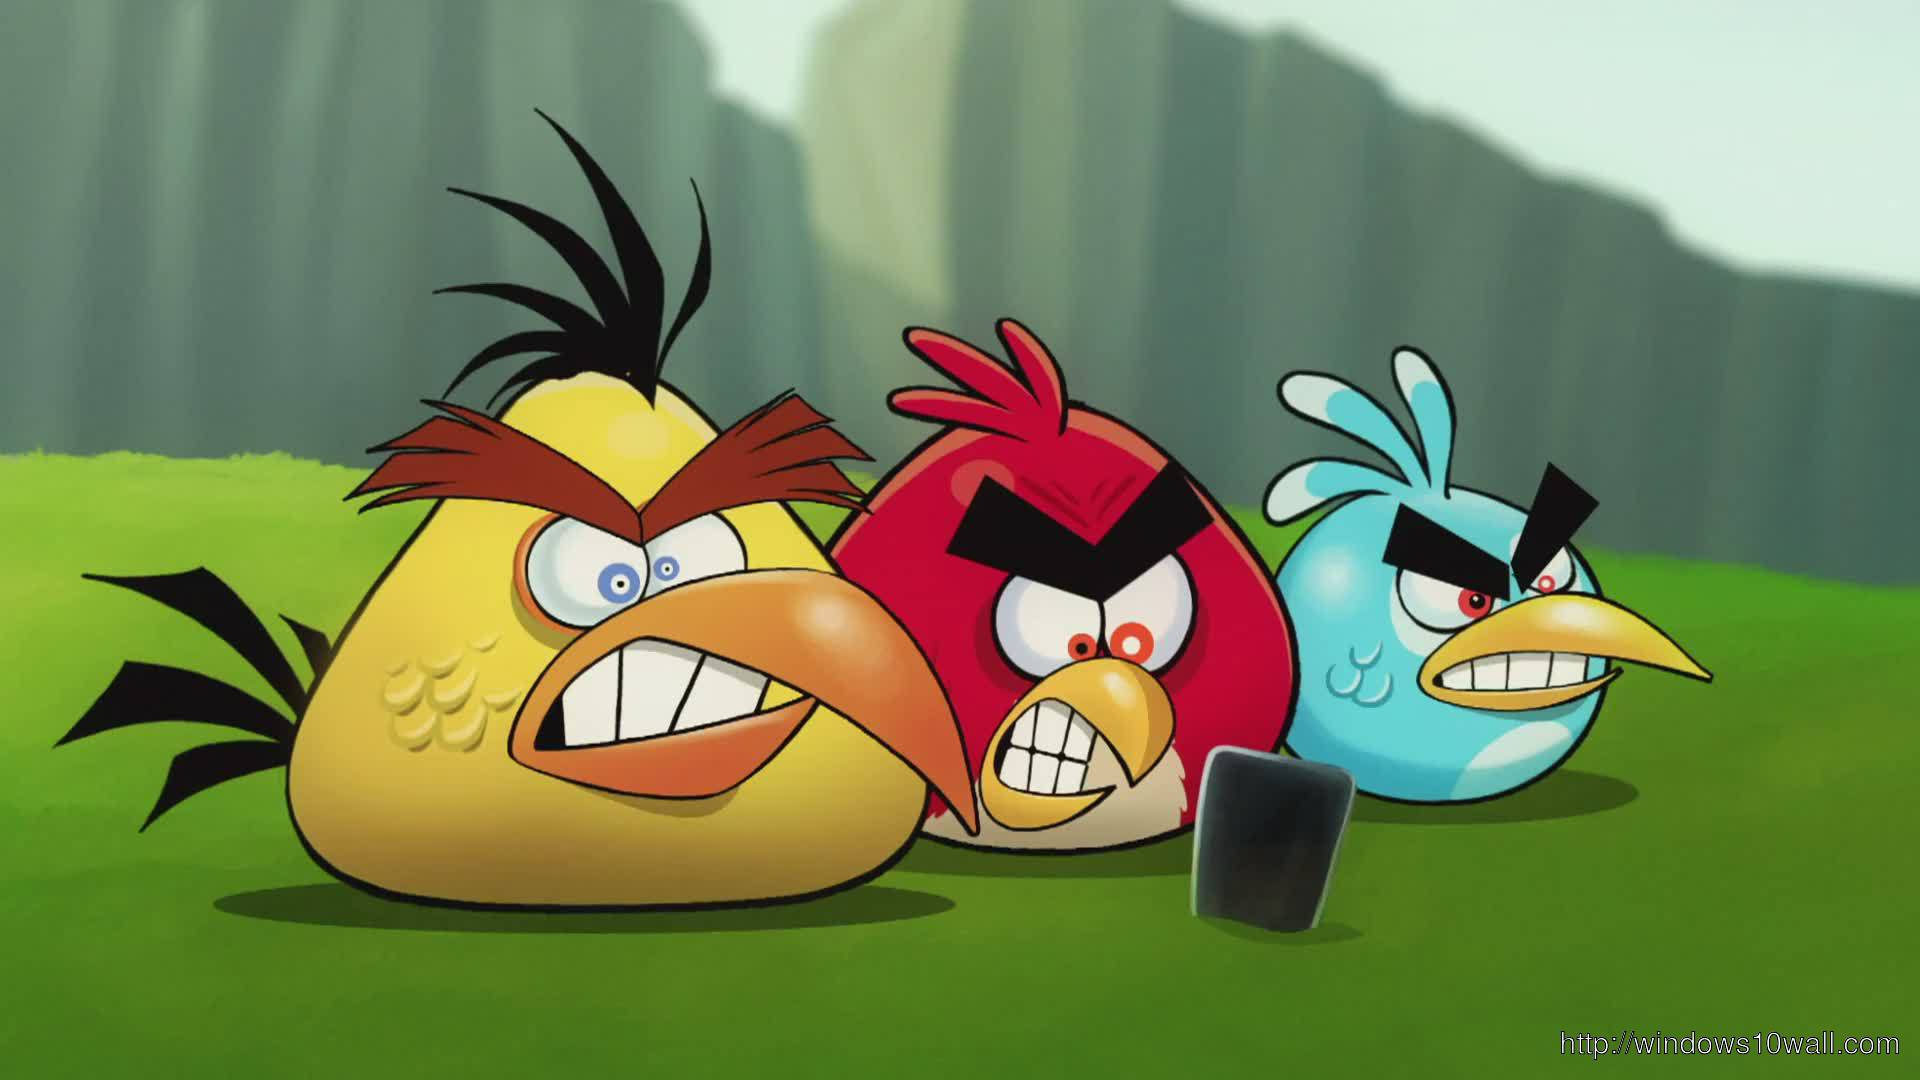 Angry Birds Wallpaper For Xp